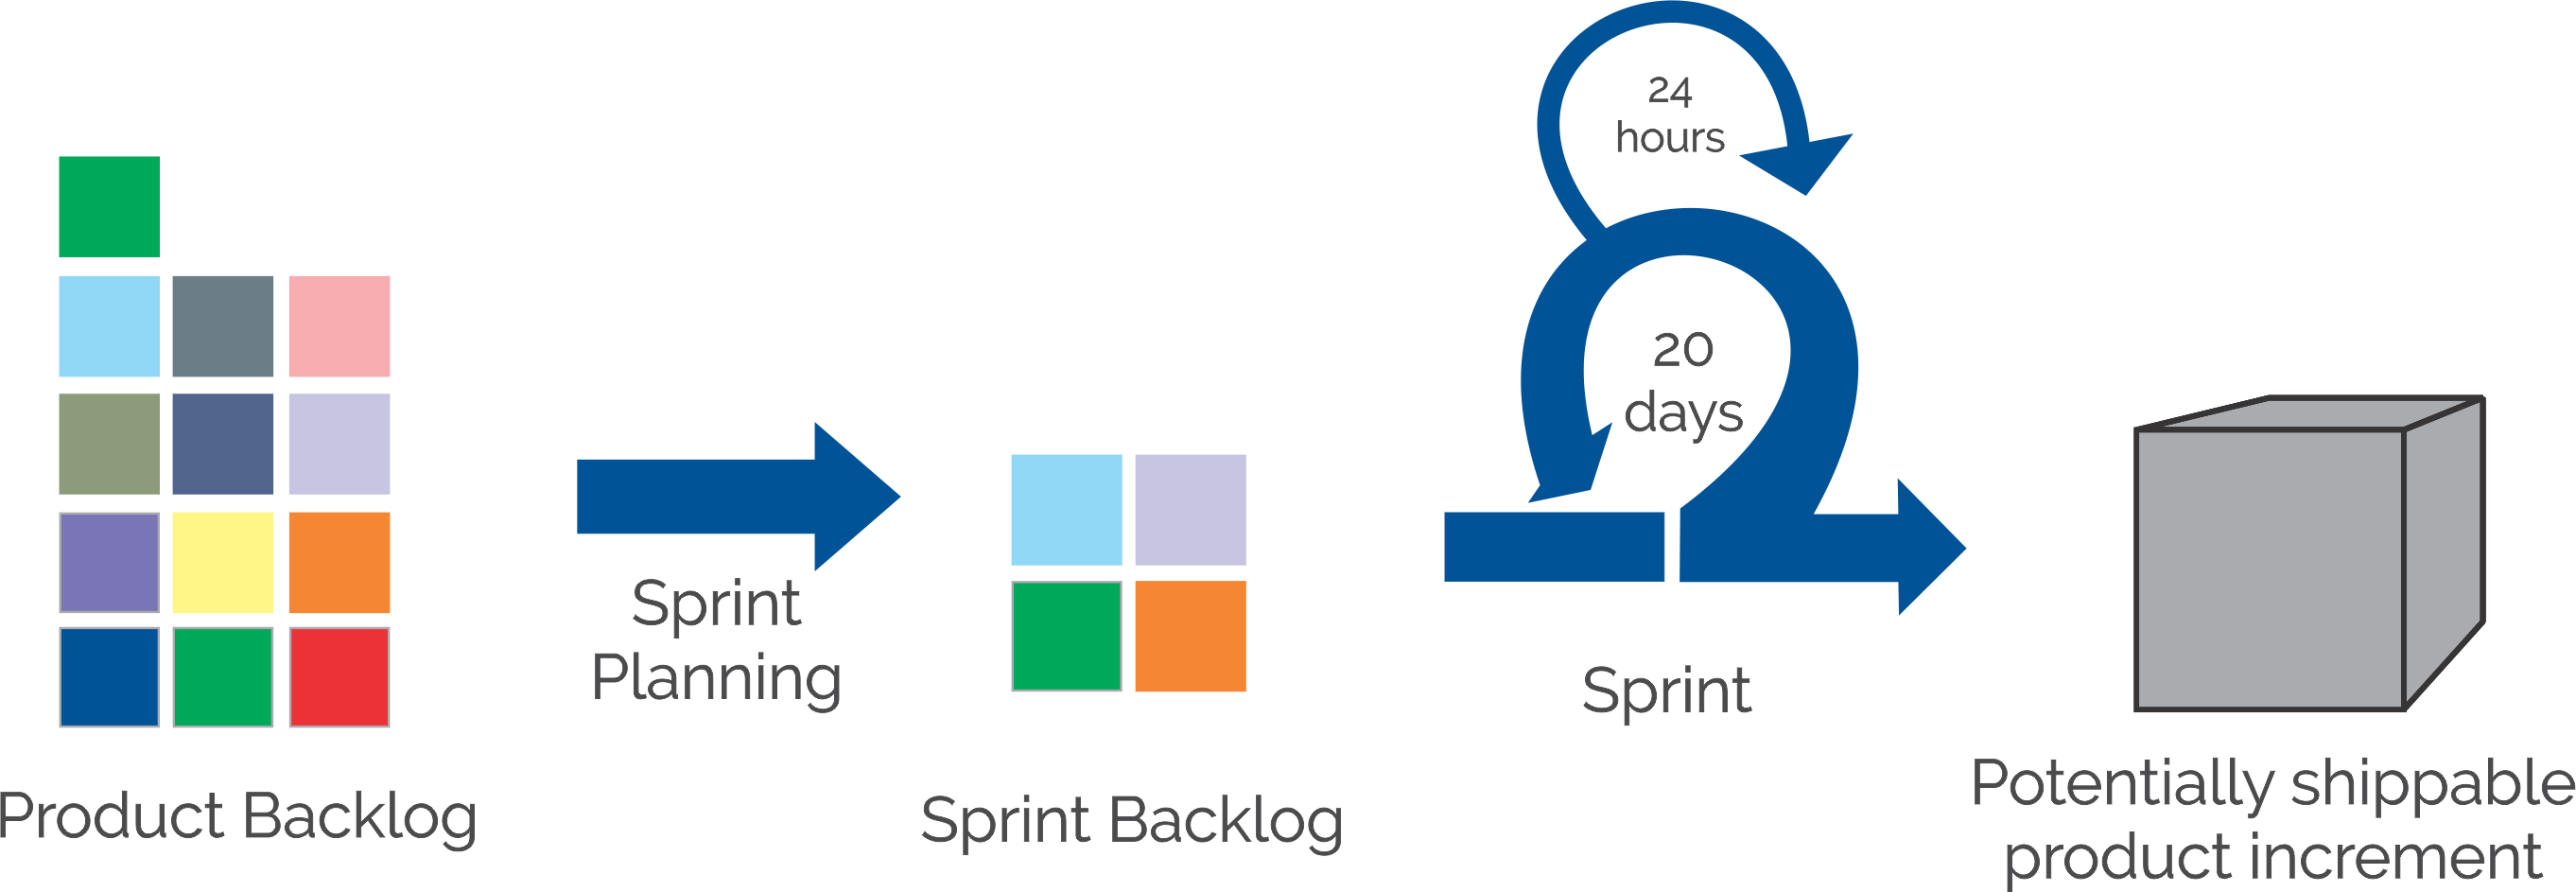 SPRINT BACKLOG SCRUM